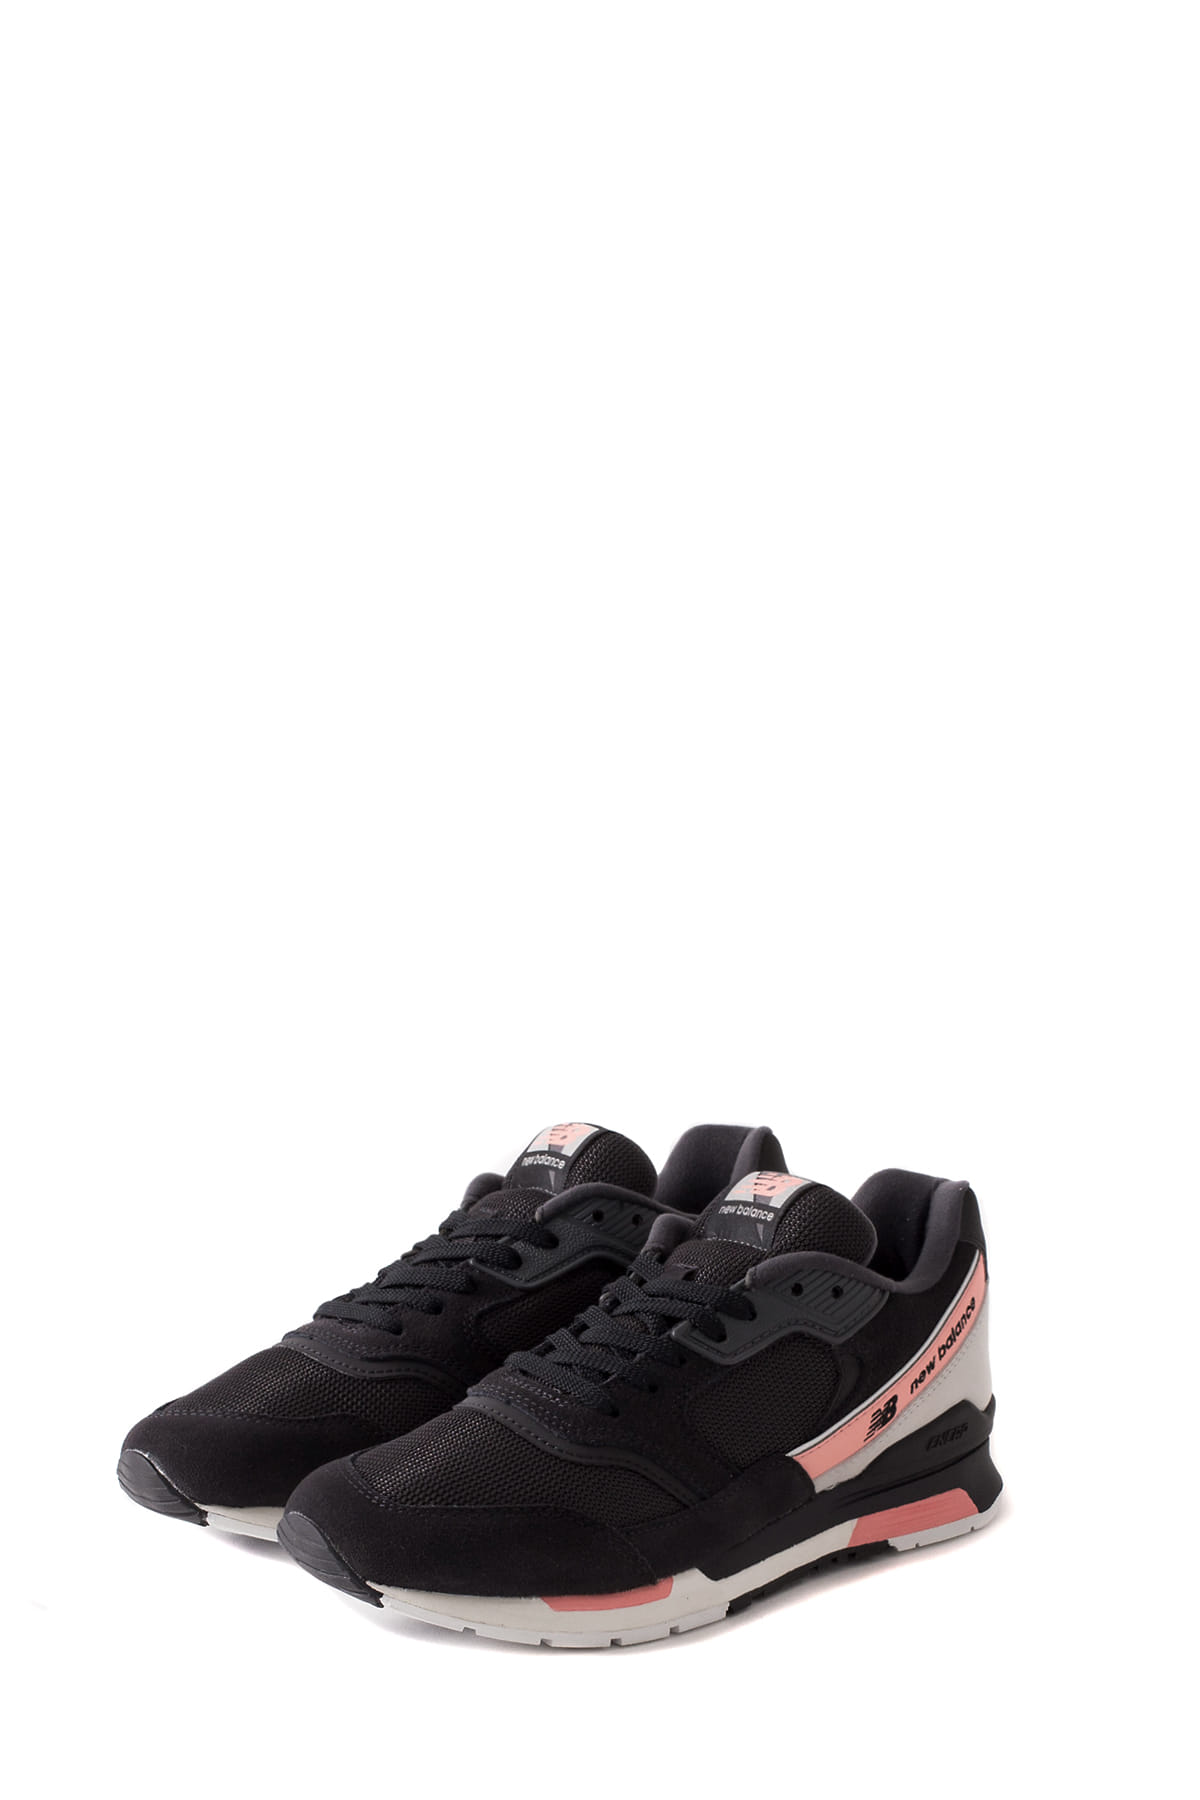 New Balance : ML99H (Black)